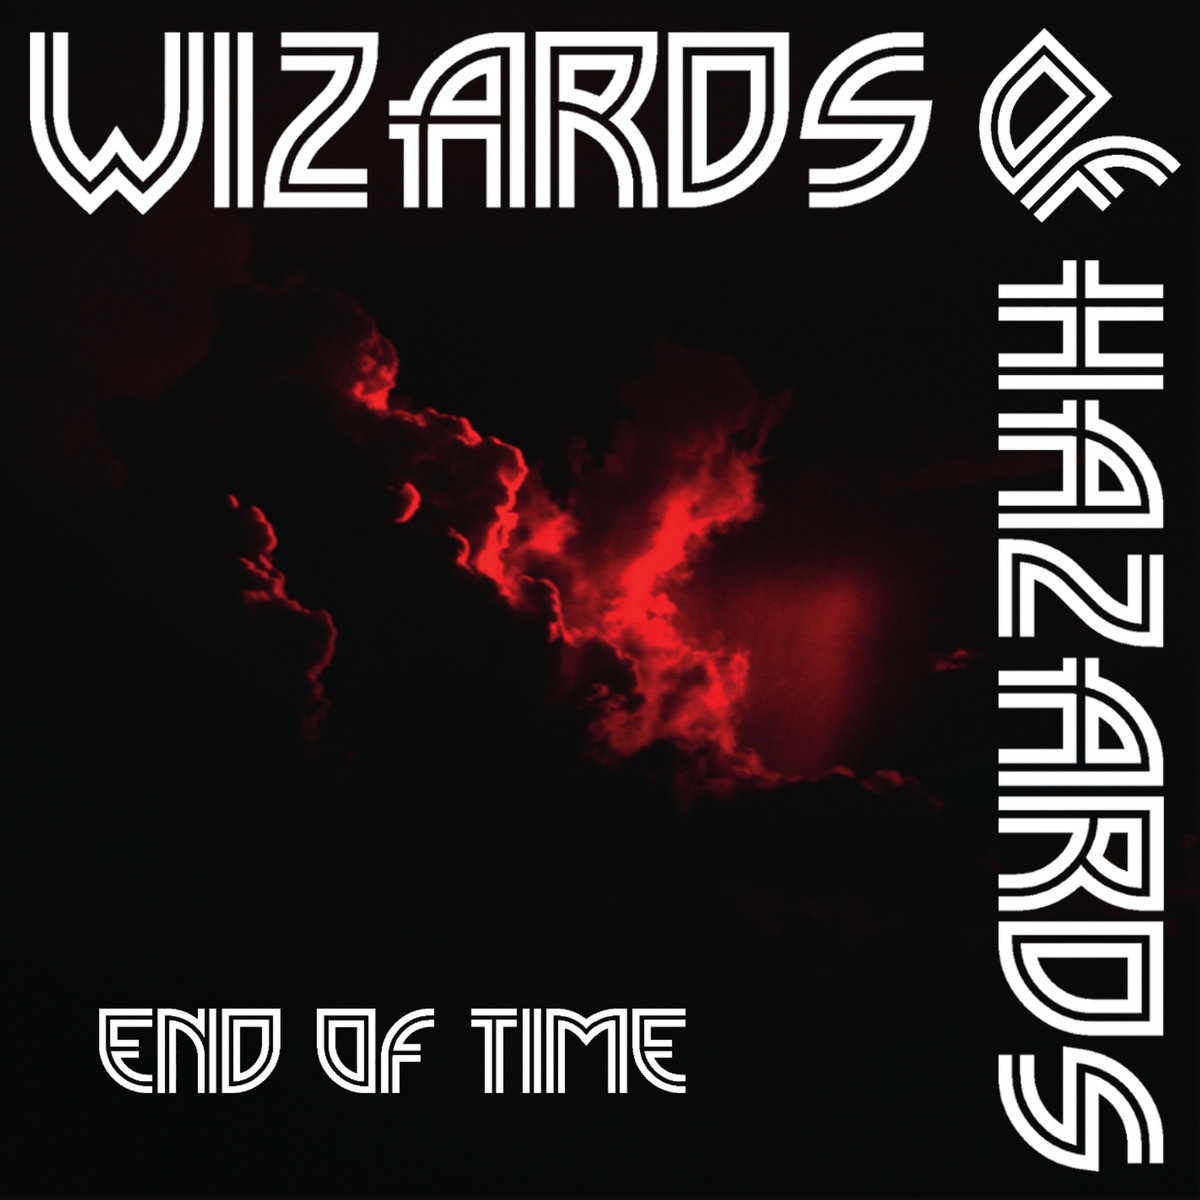 wizards of hazards end of time